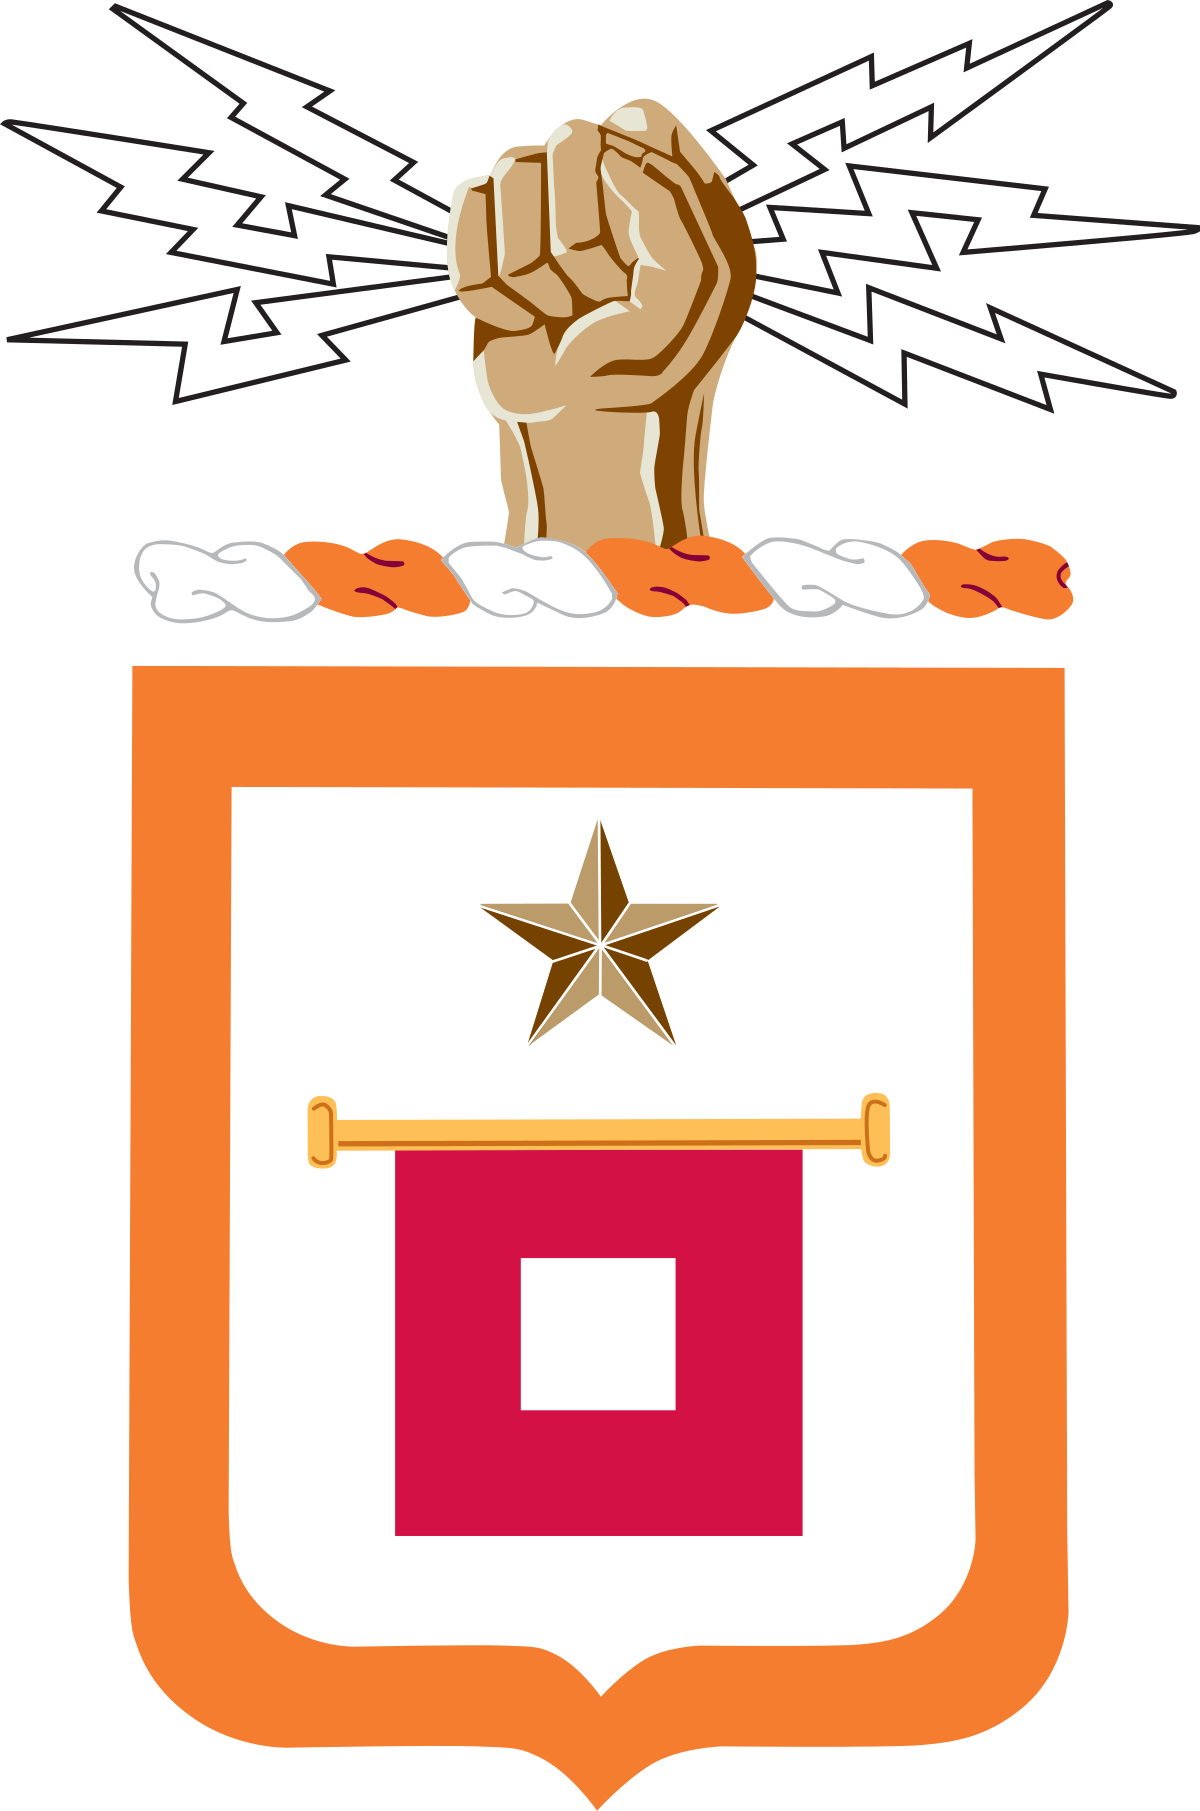 Signal Corps (United States Army).